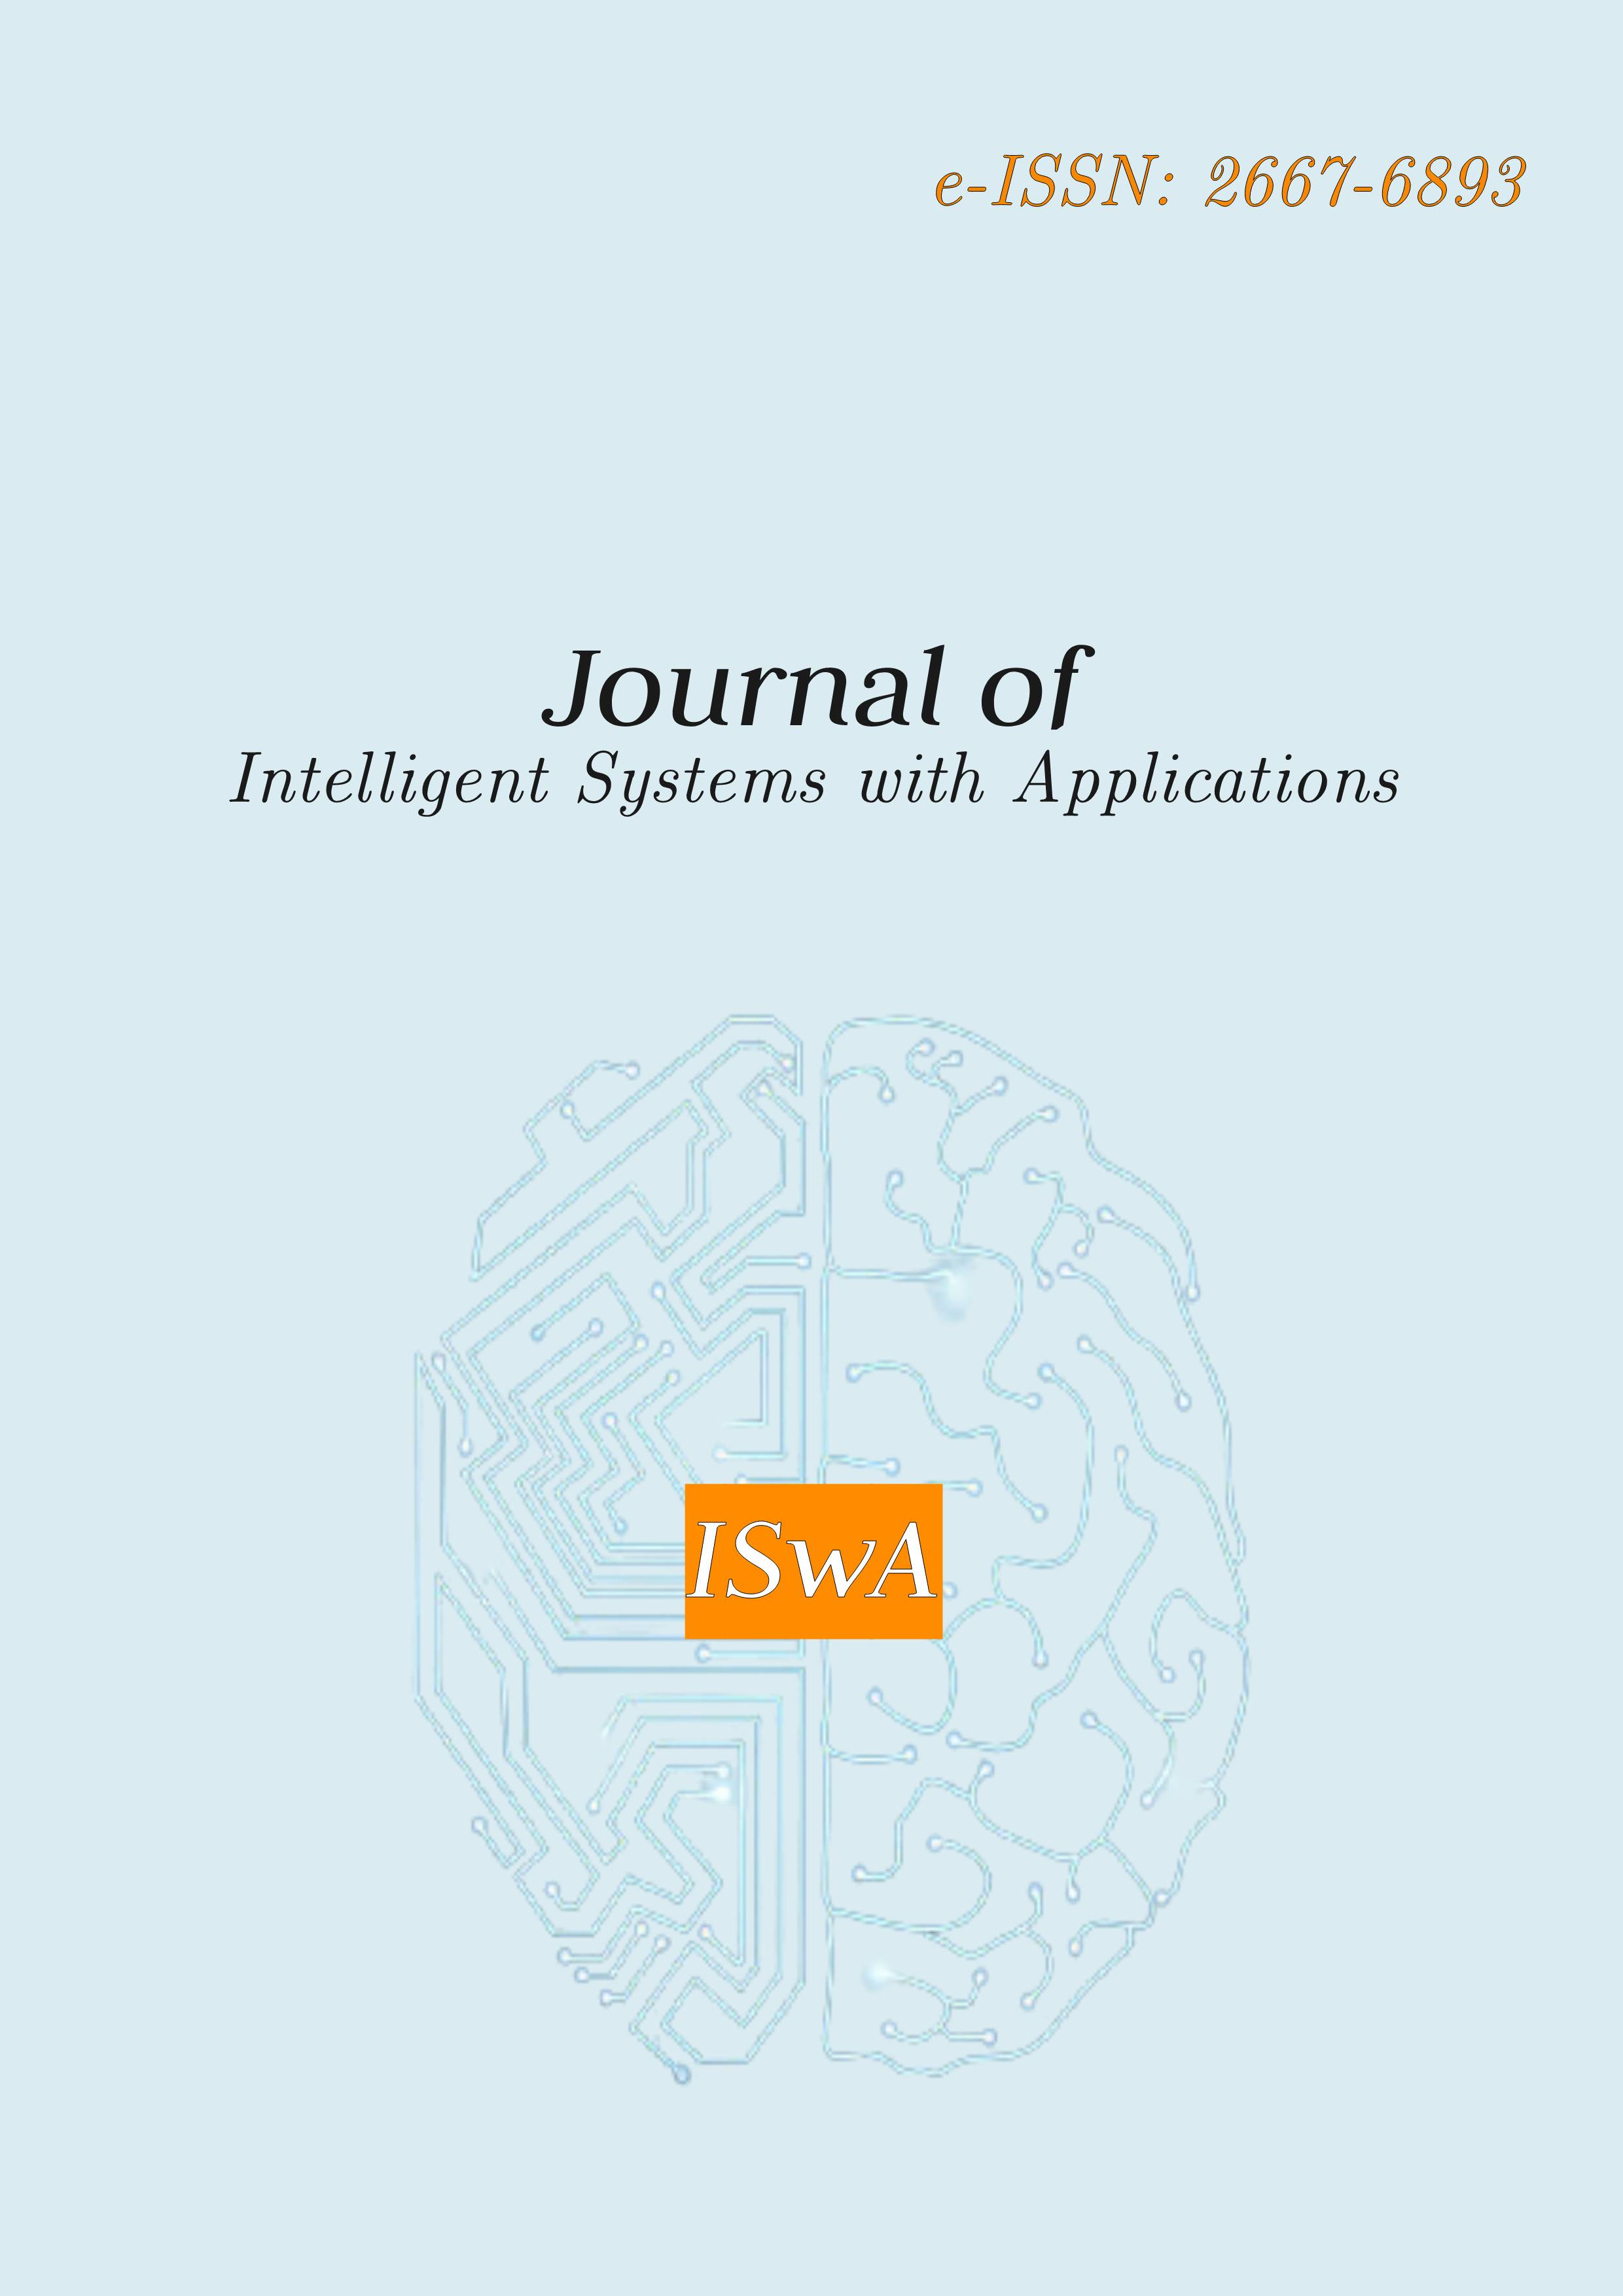 Journal of Intelligent Systems with Applications